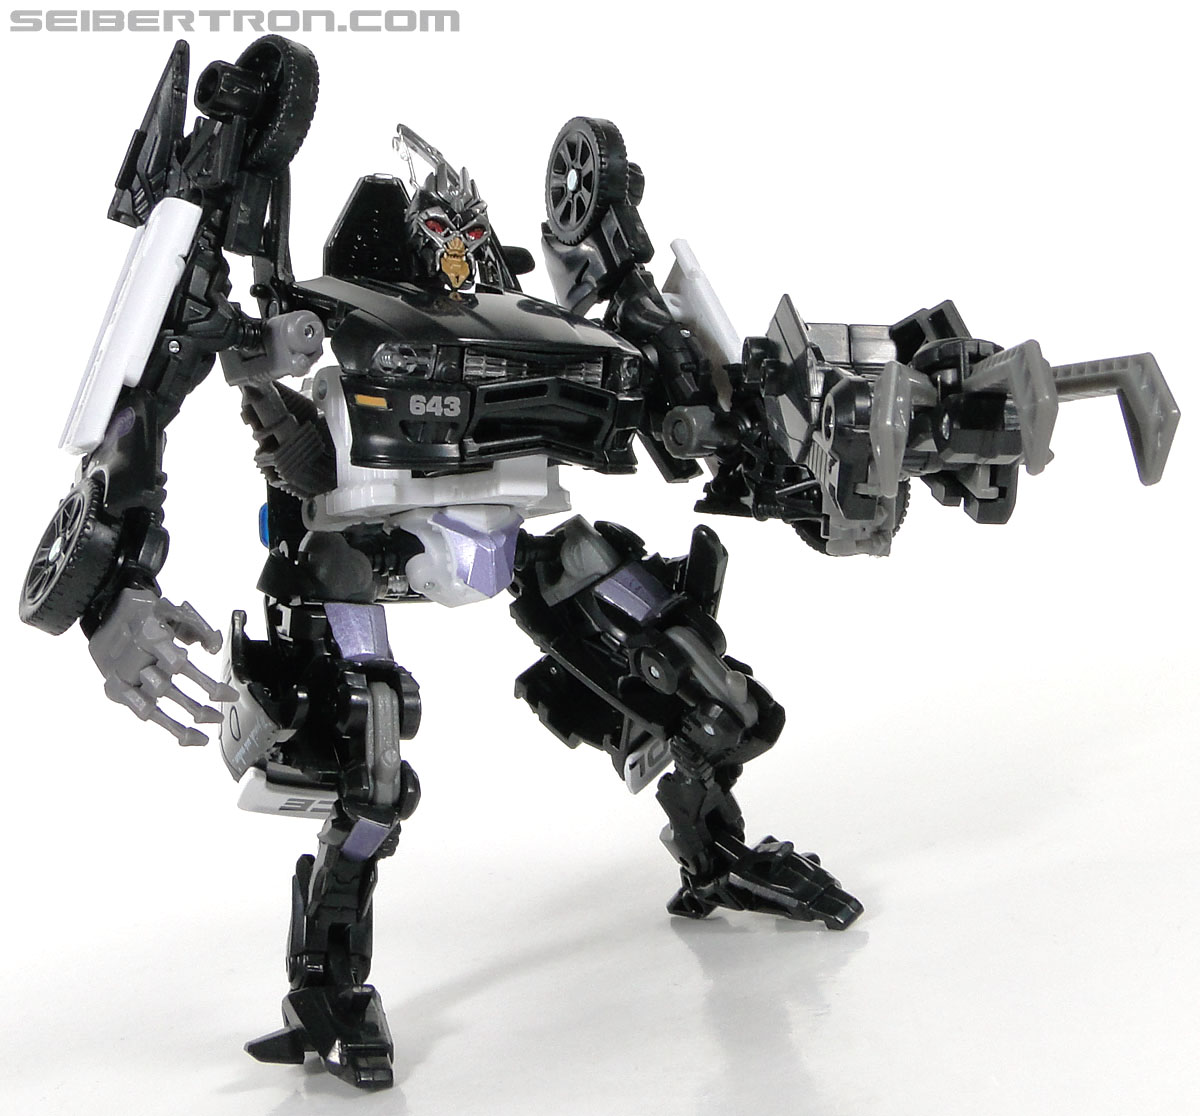 Transformers Dark of the Moon Barricade (Image #118 of 153)